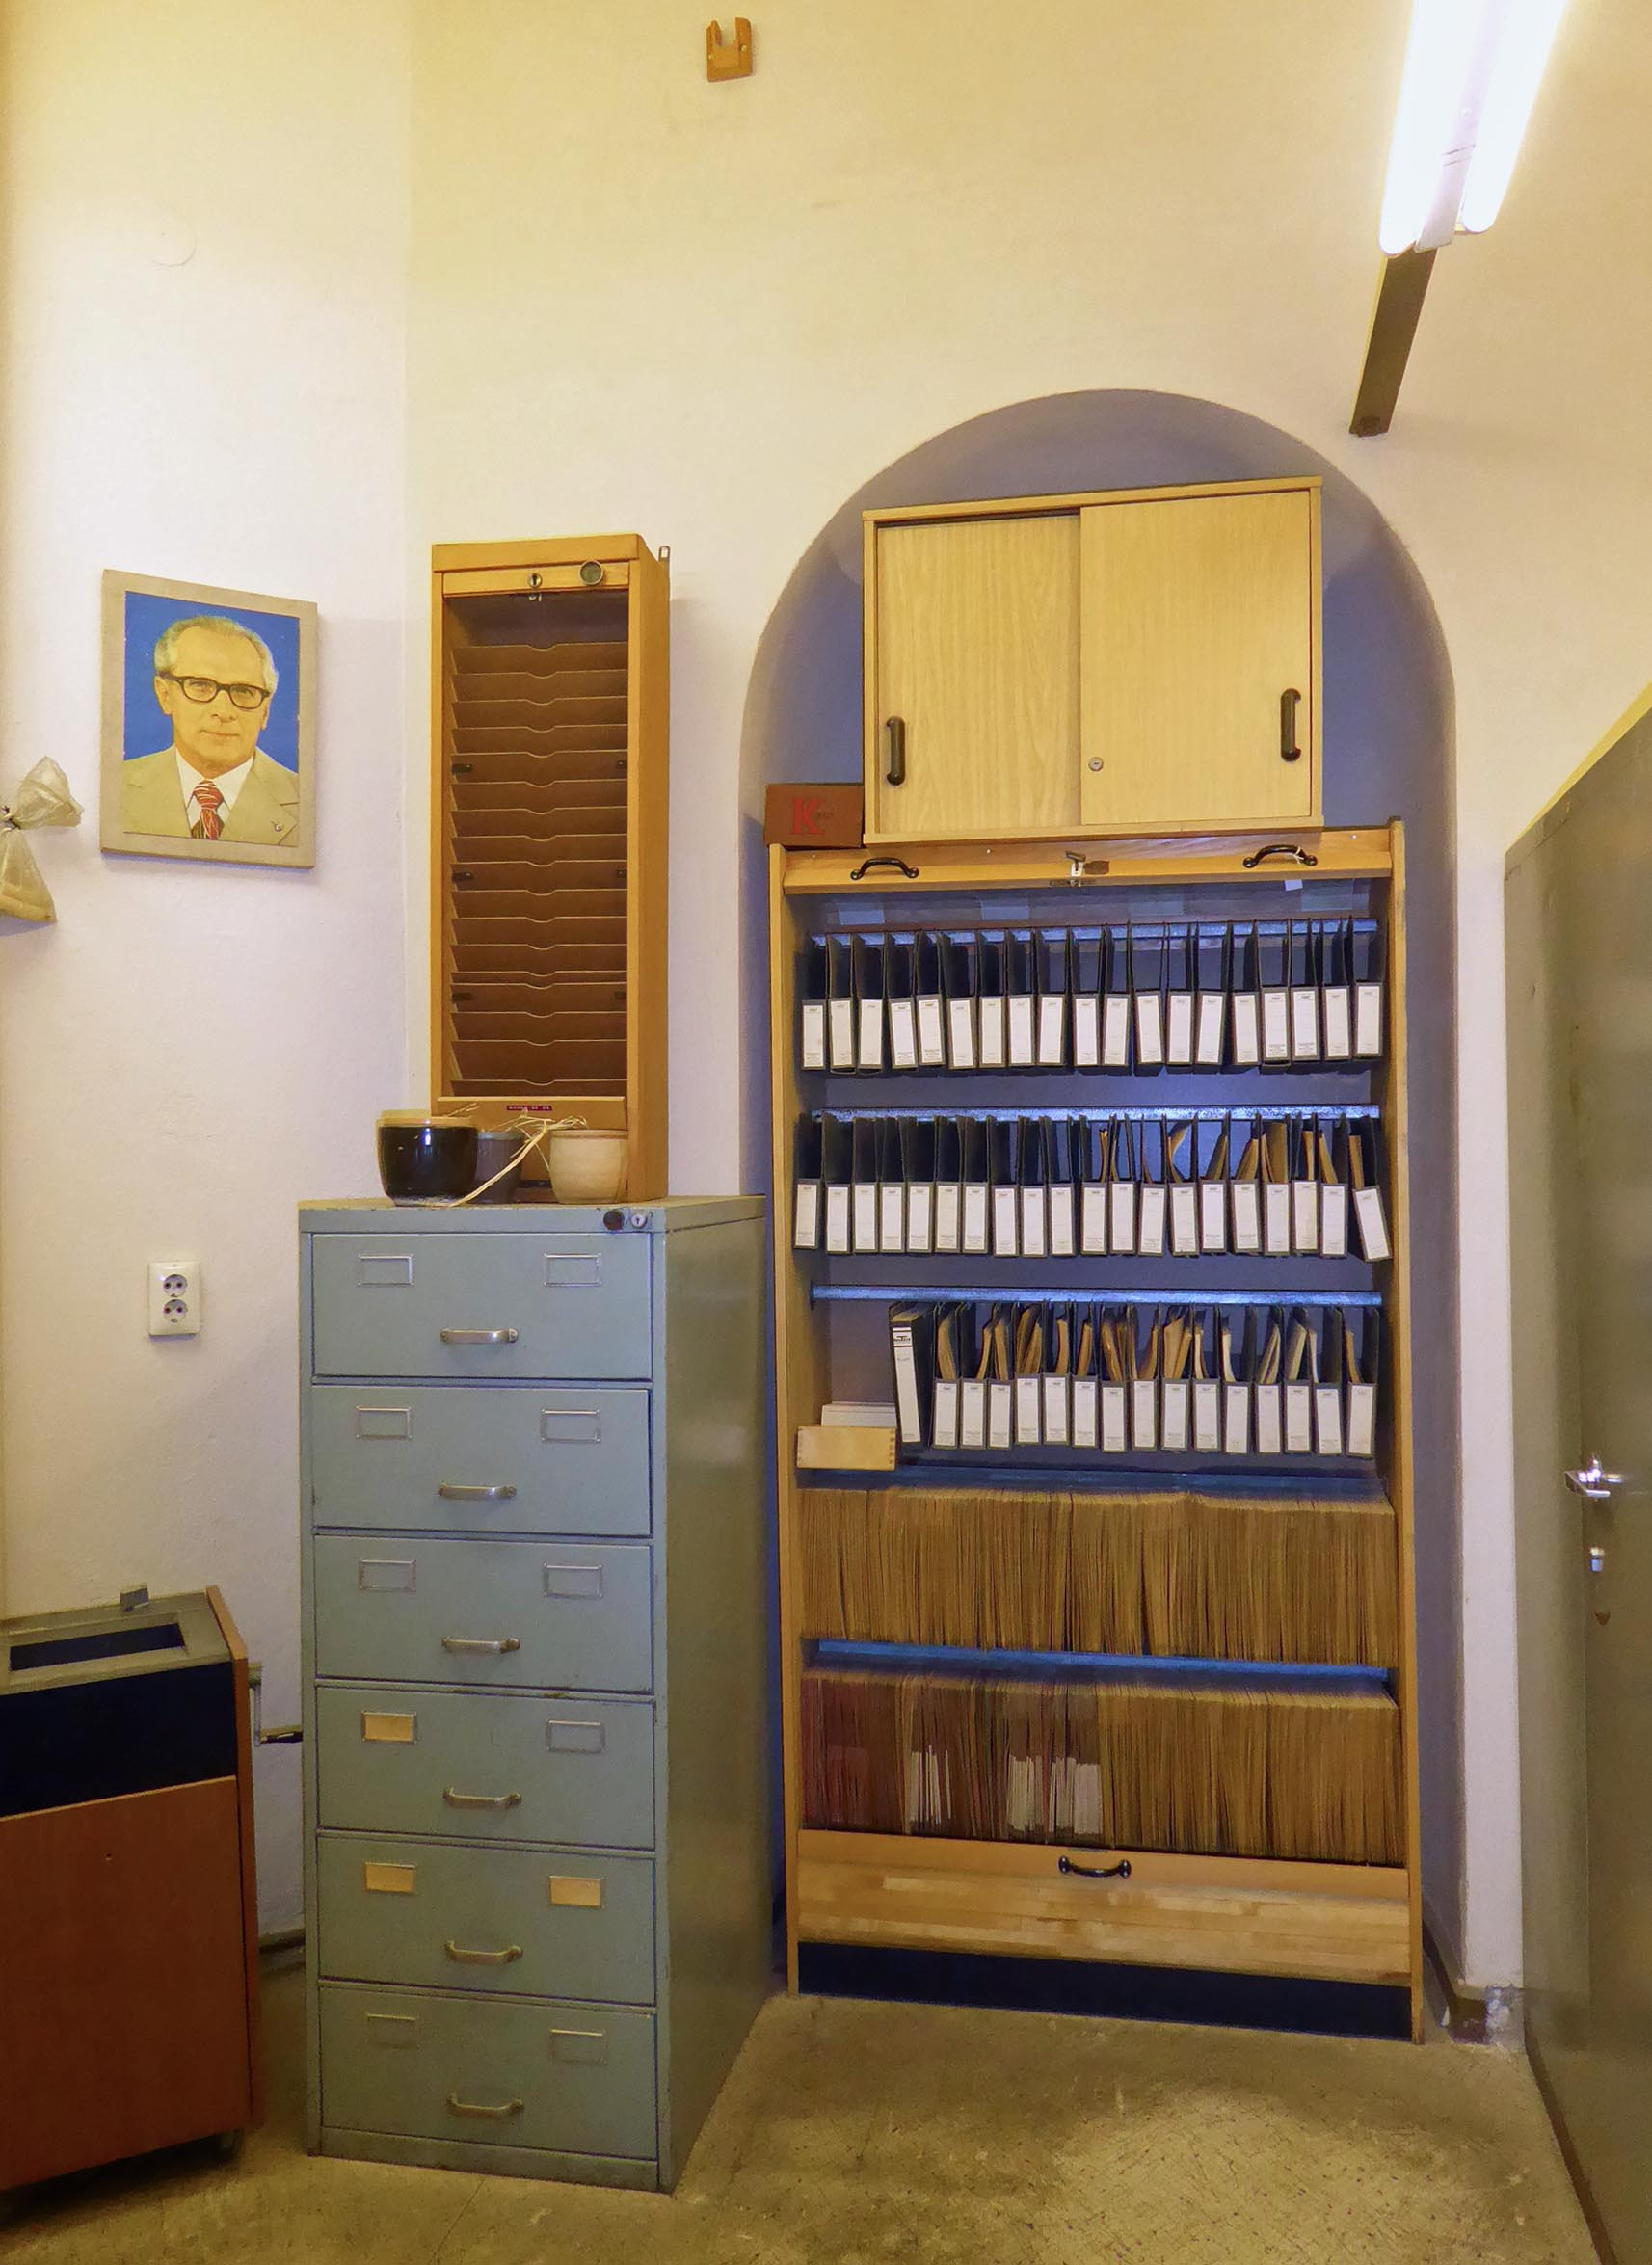 Old office with filing cabinets